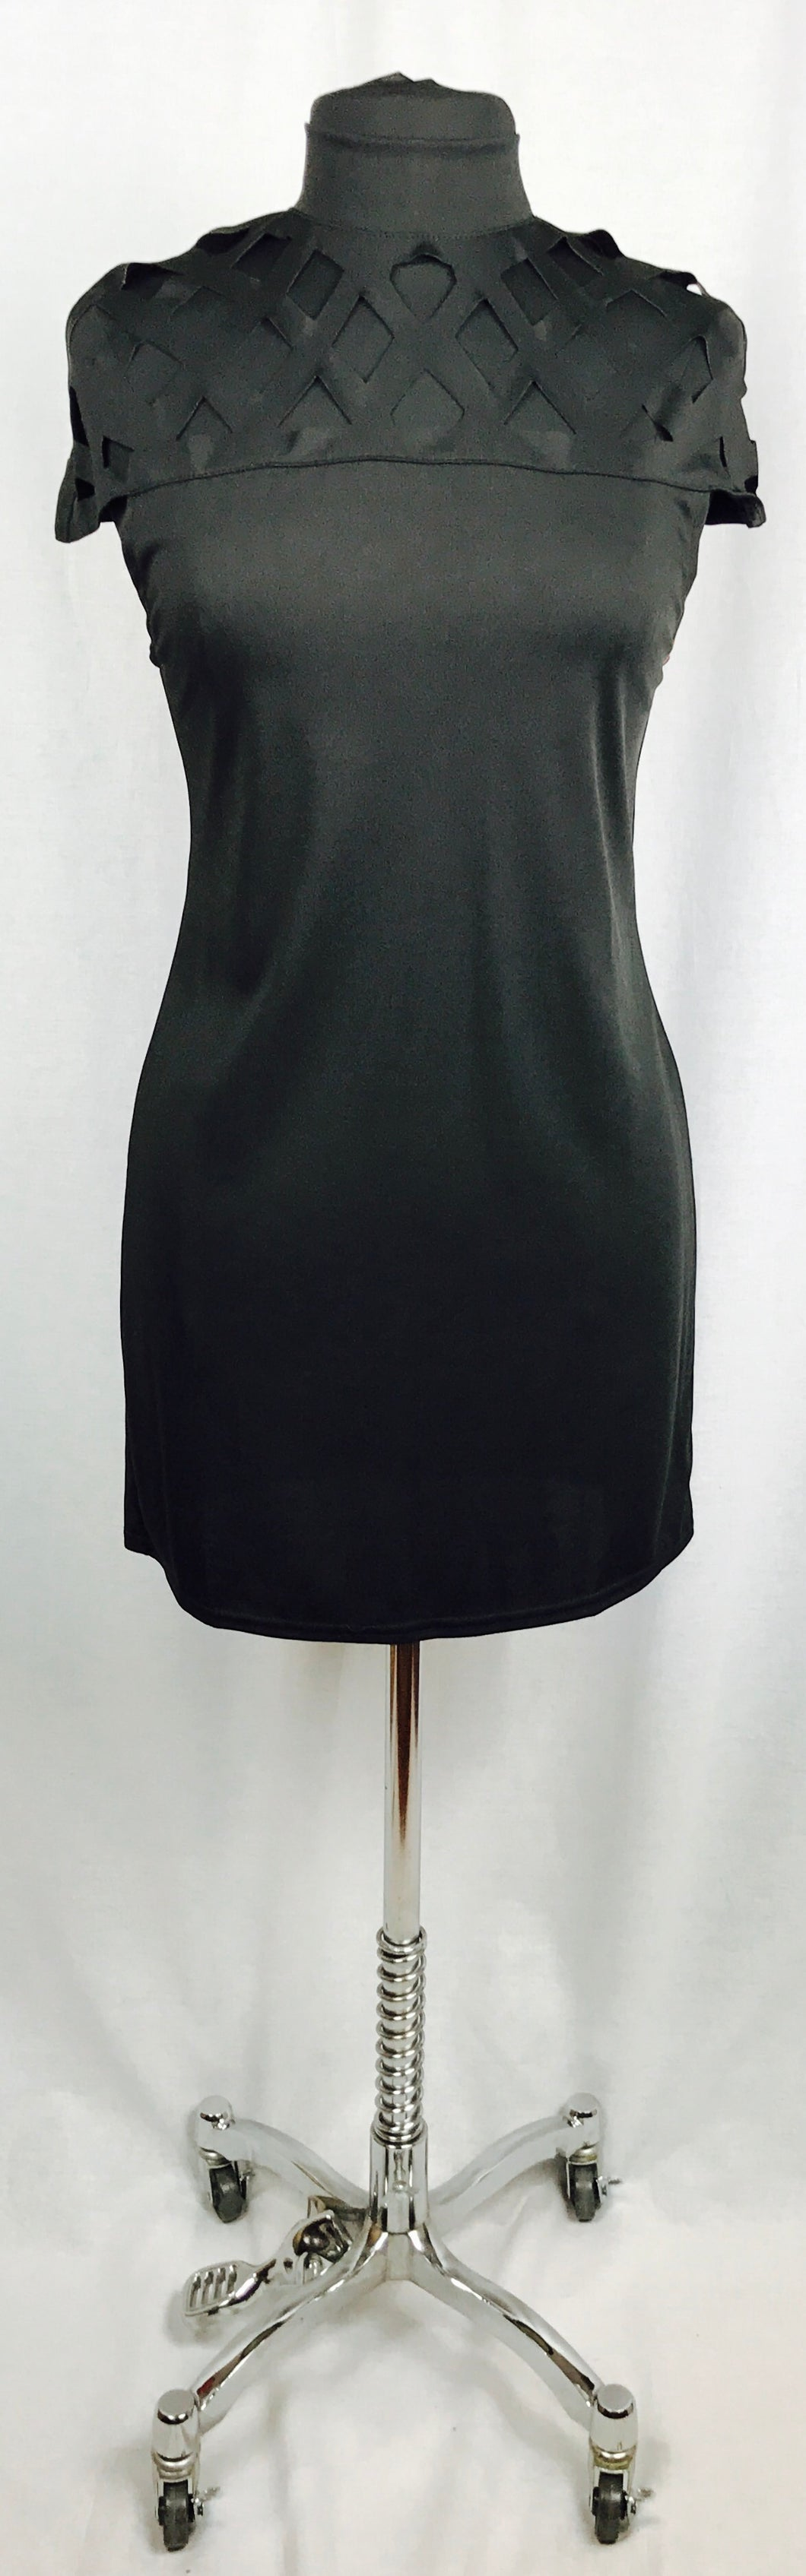 Black, cut-out shoulders, cap sleeves